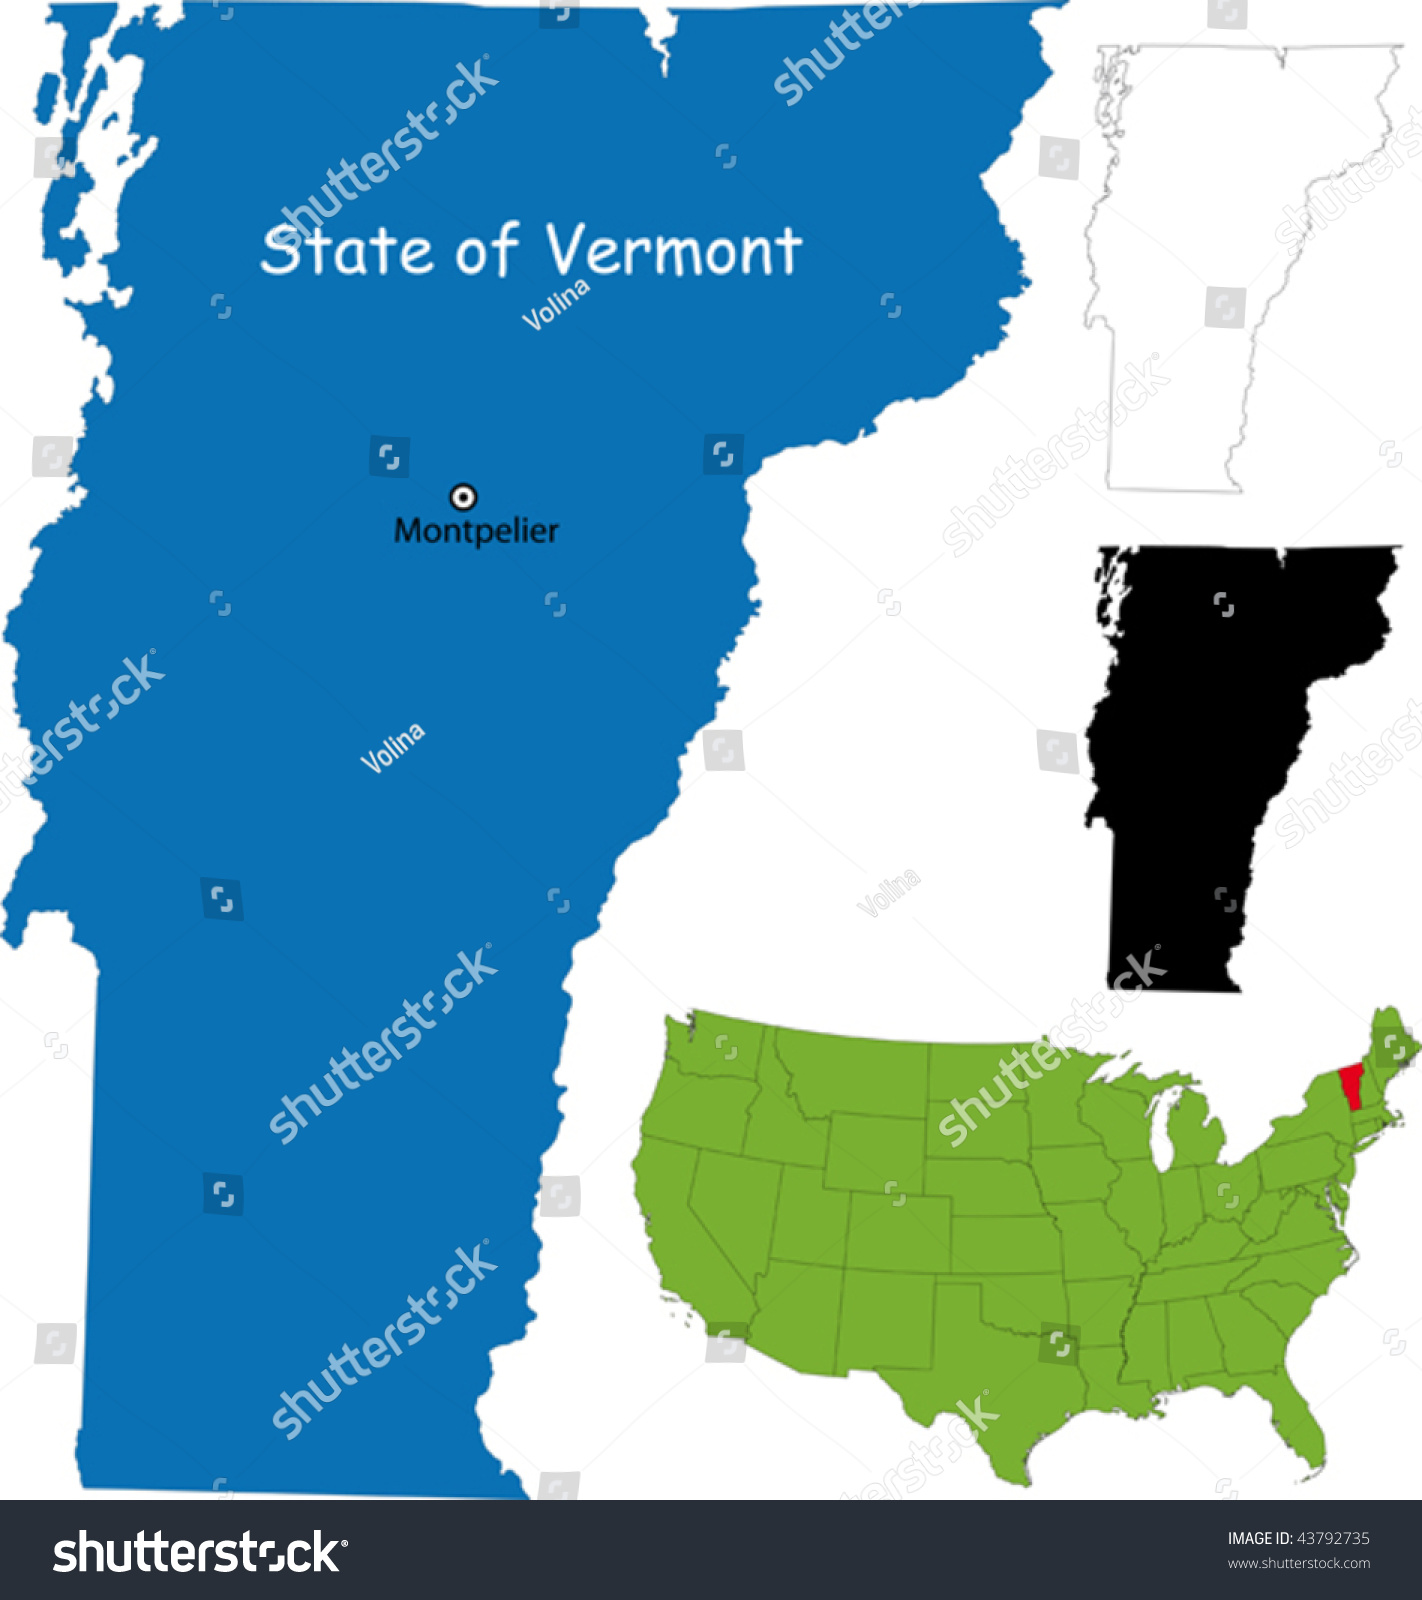 FileMap Of USA VTsvg Wikimedia Commons Vermont Location On The US